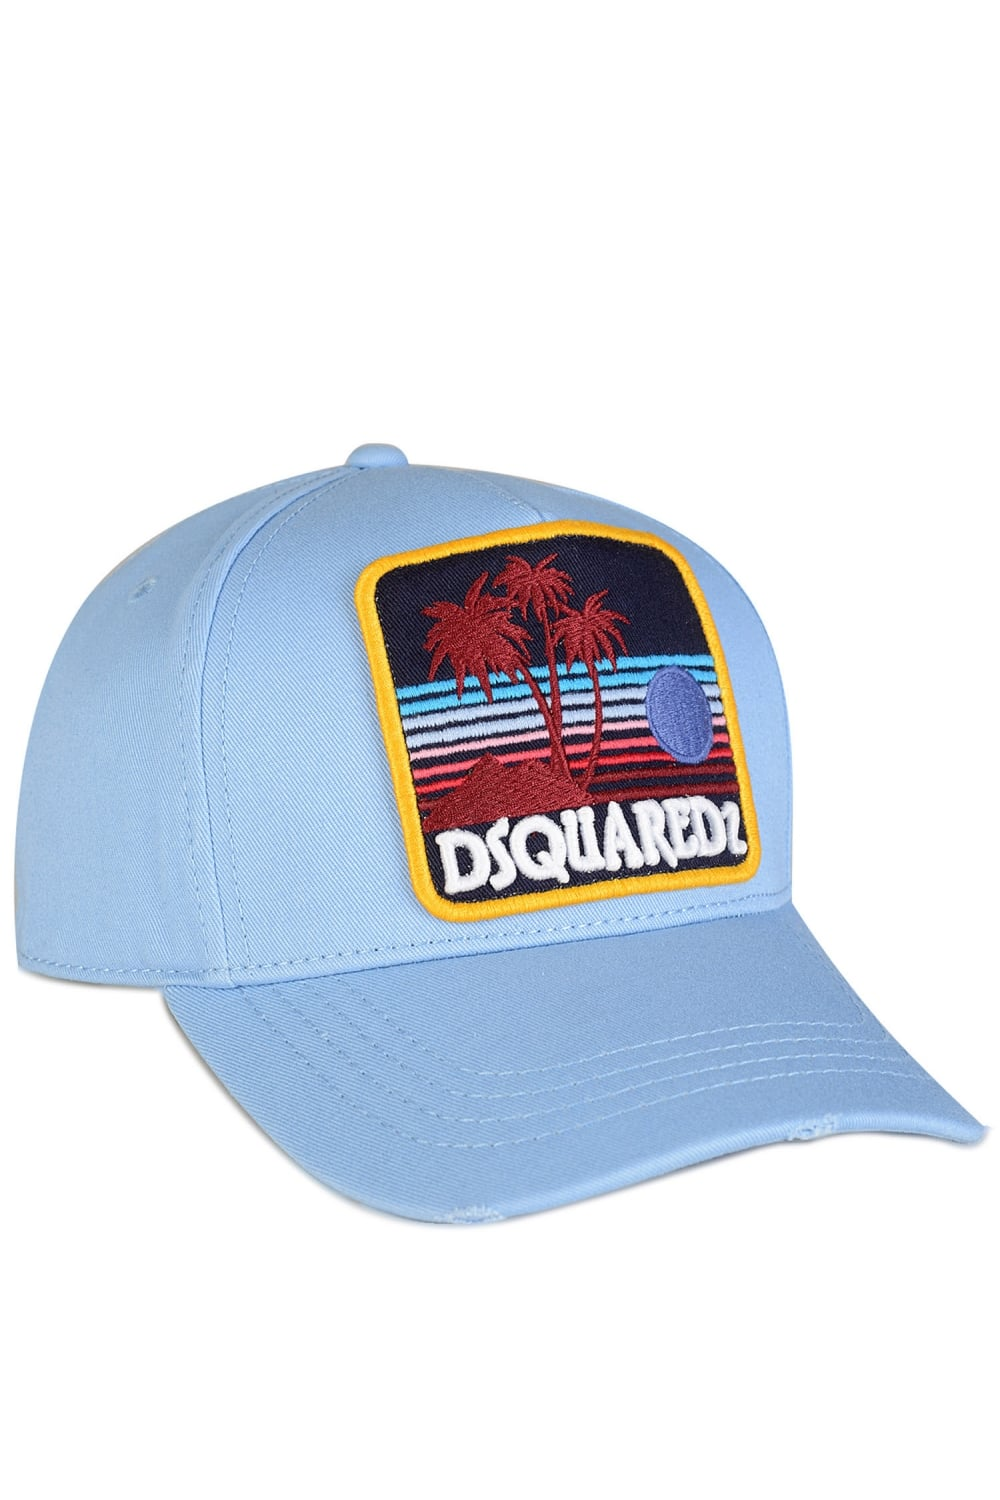 DSQUARED2 Dsquared Logo Patch Baseball Cap - Clothing from Circle ... da102355a12